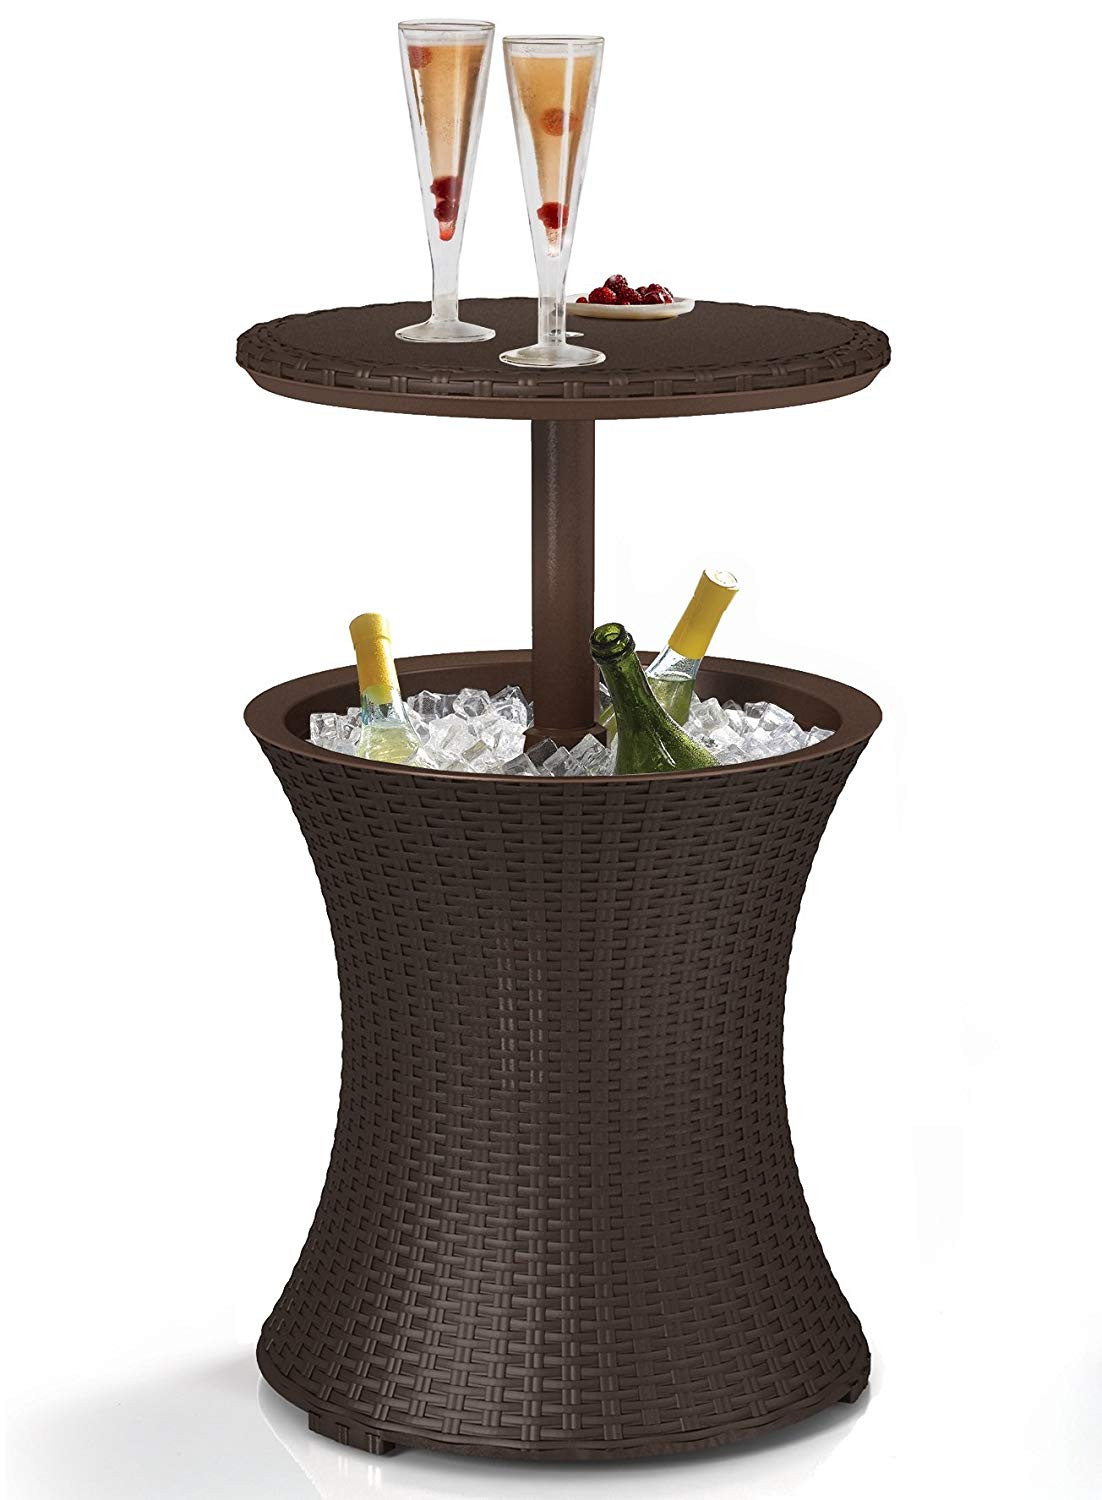 keter gal cool bar rattan style outdoor patio pool side table with ice bucket cooler brown wicker garden modern sofa design antique dining folding sides circle coffee set home